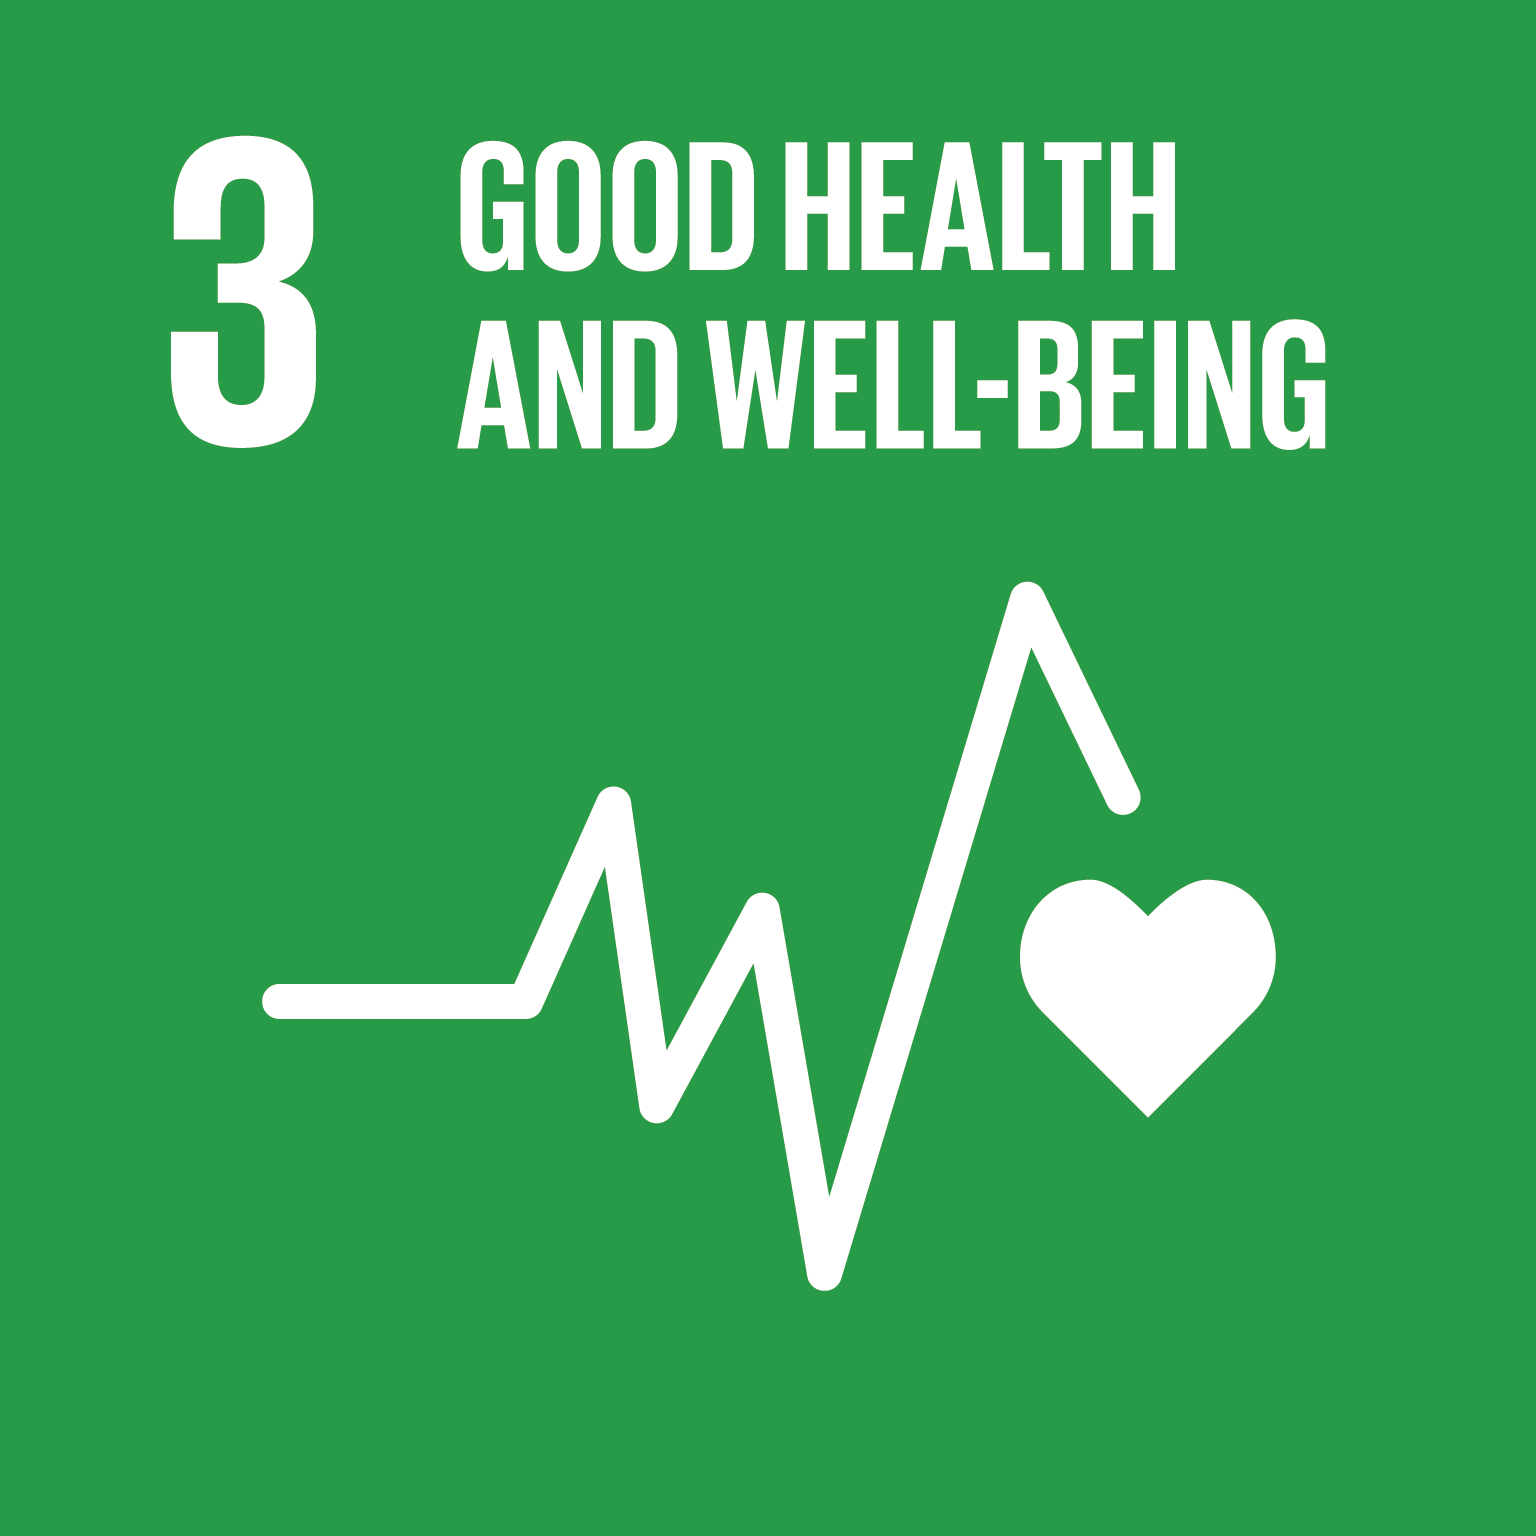 Good Health and Well-Being - Ensure healthy lives and promote well-being for all at all ages